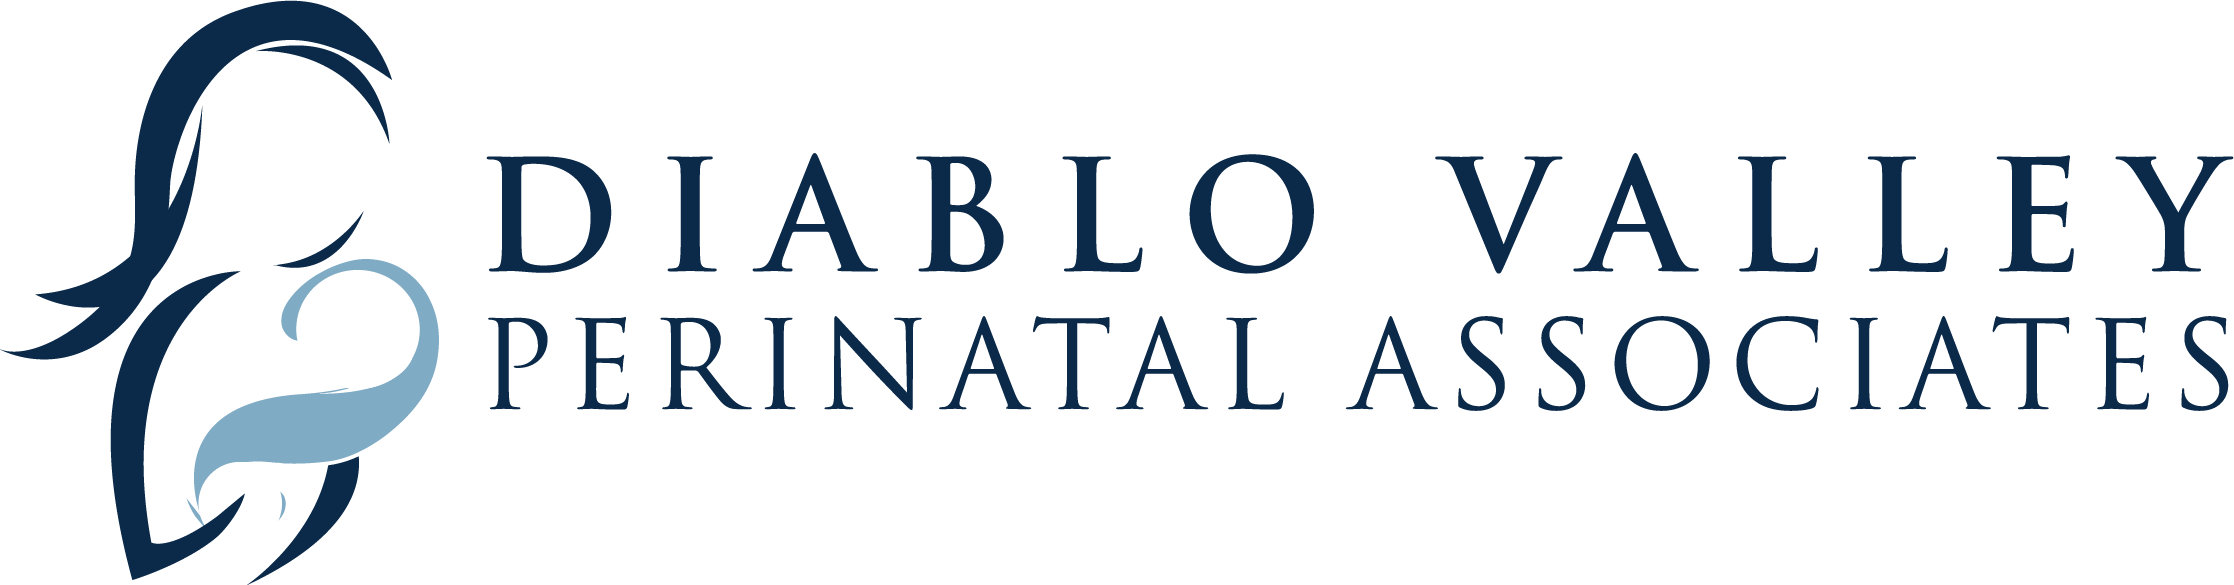 Diablo Valley Perinatal